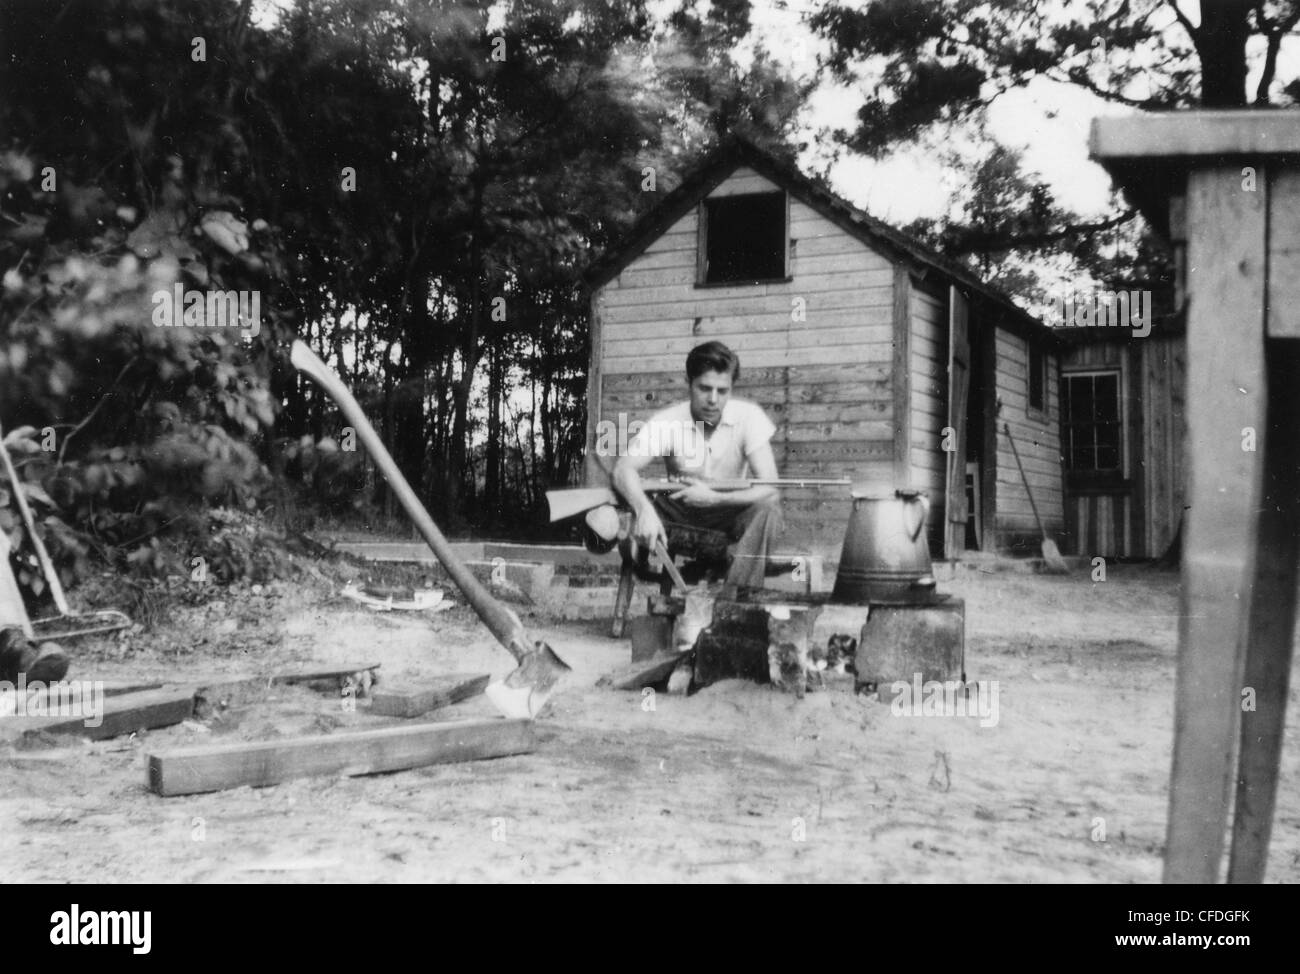 young man with rifle outside homestead house navy uniform fire kettle 1920s 1930s dreamlike - Stock Image